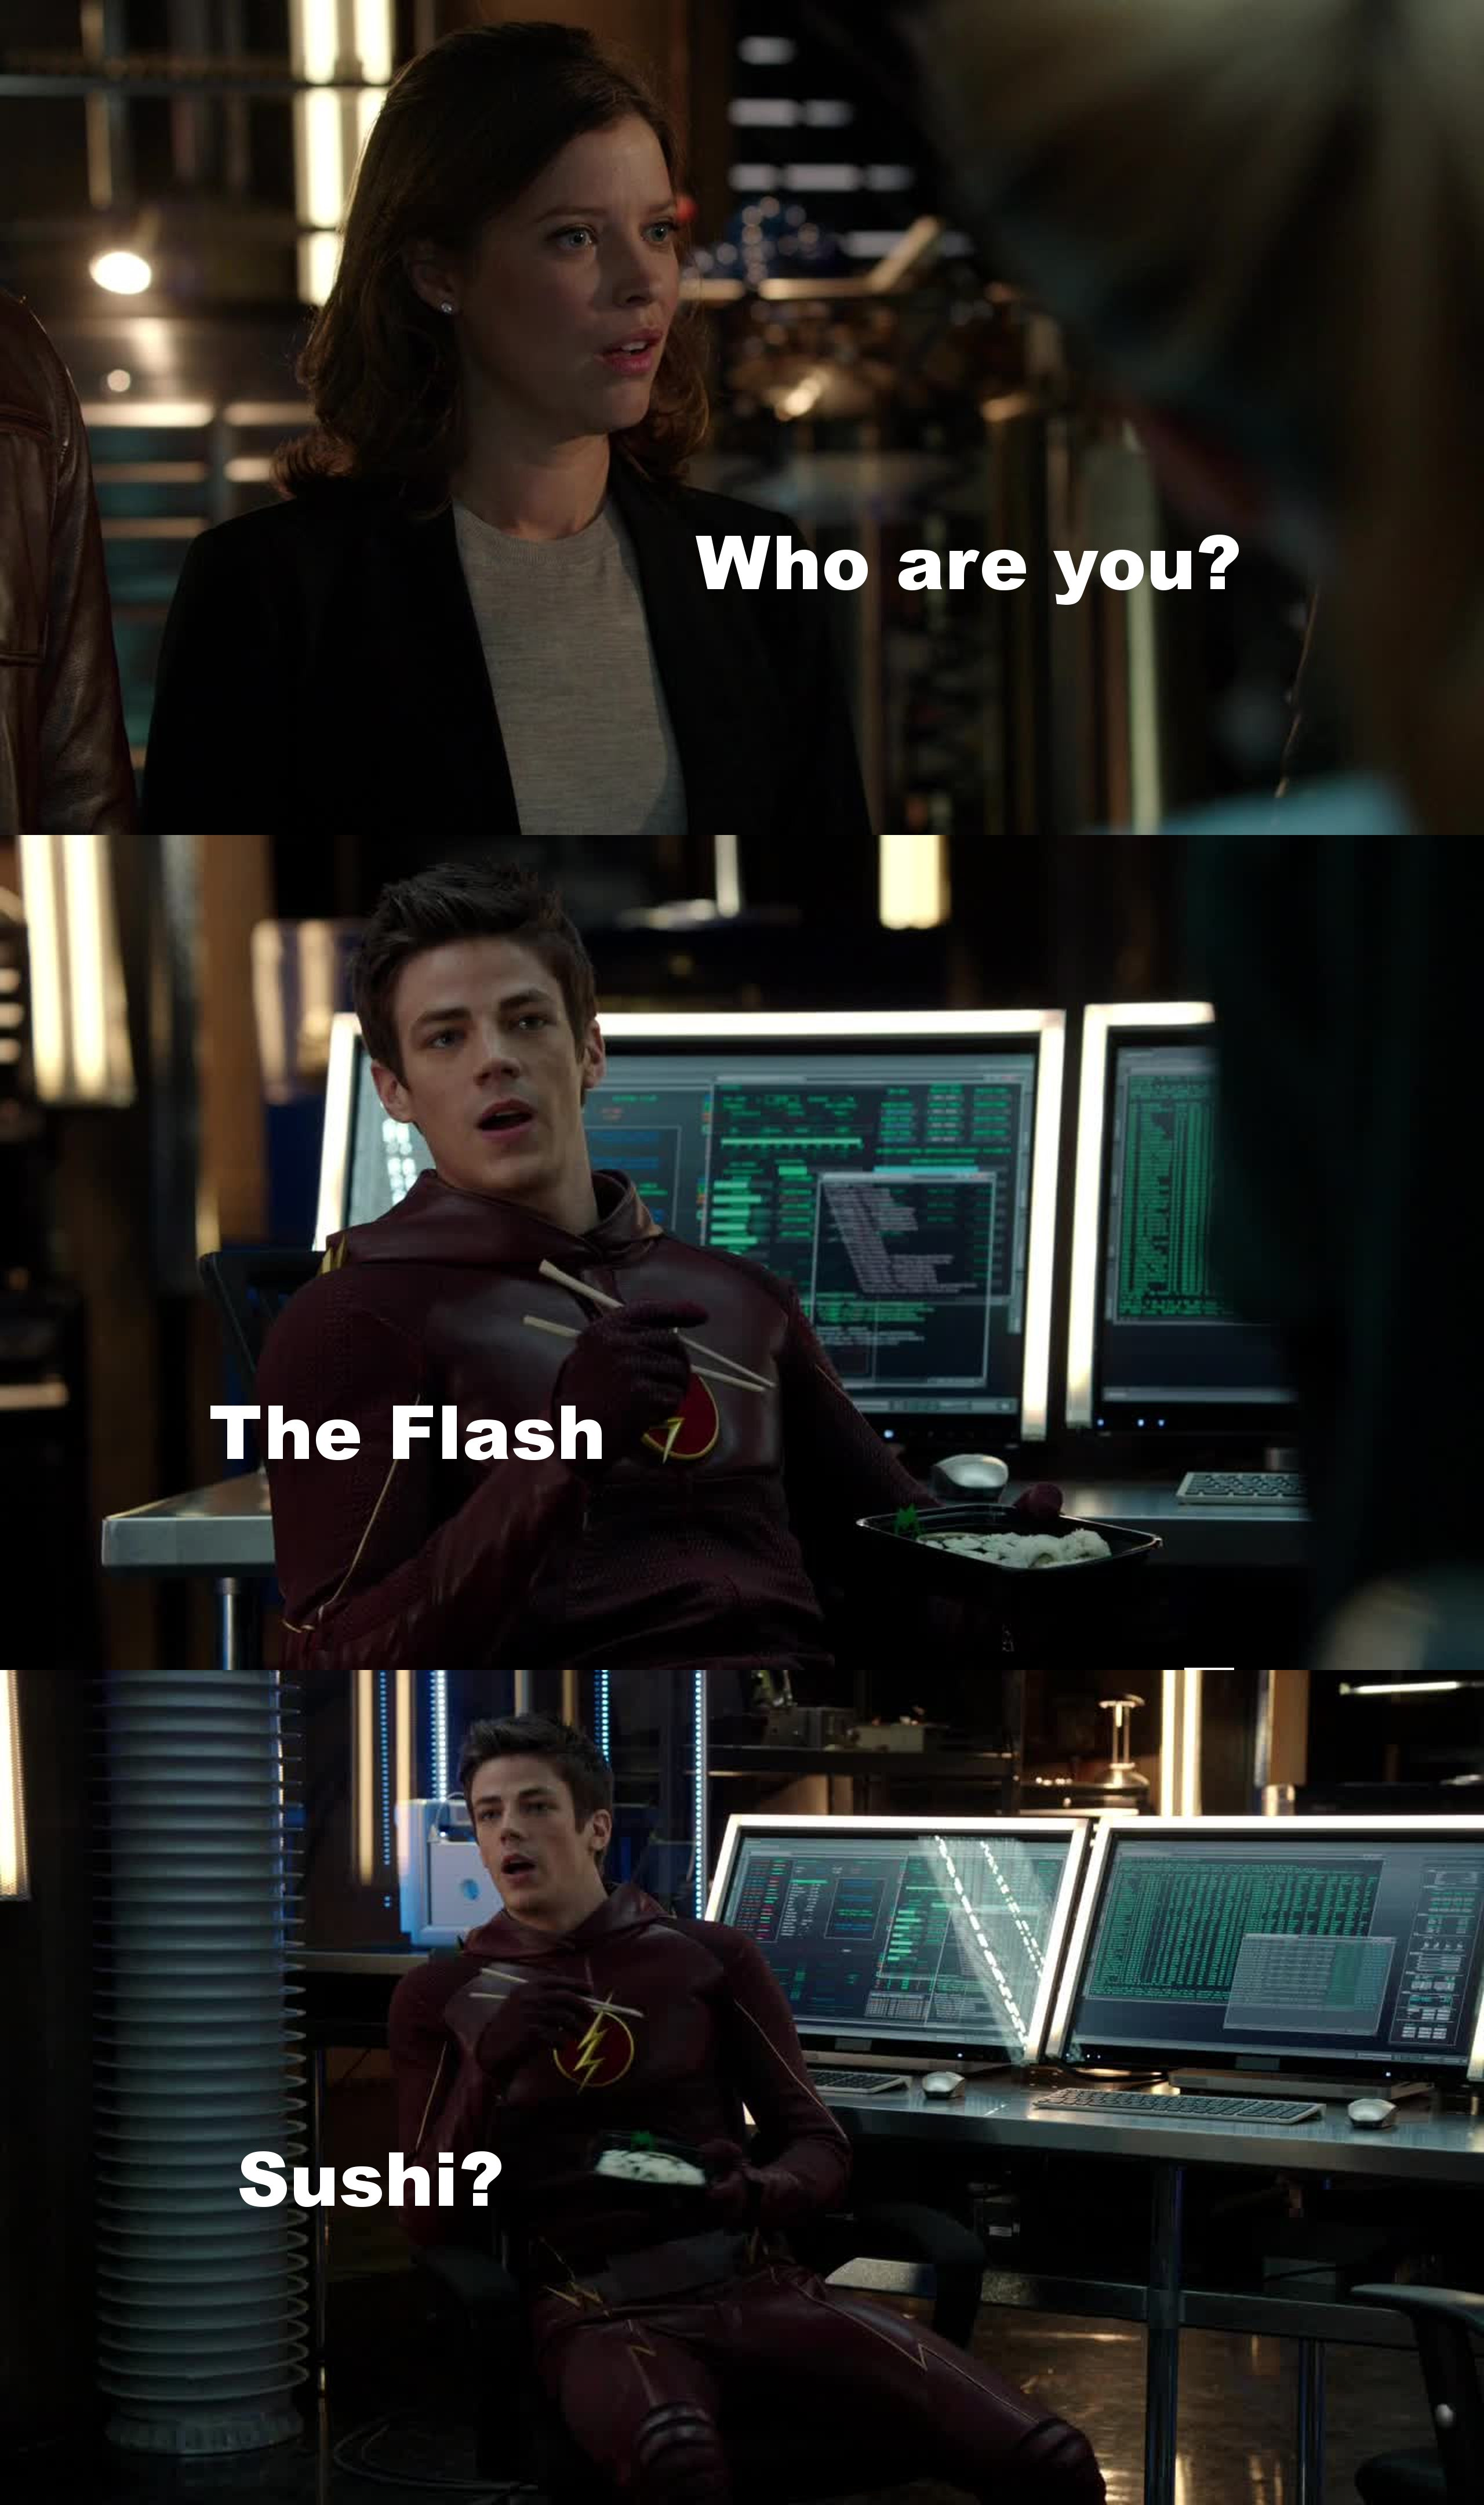 Ahahaha Barry a way funnier than Ollie!  Ollie c'mon, take a break, smile, and eat some sushi.